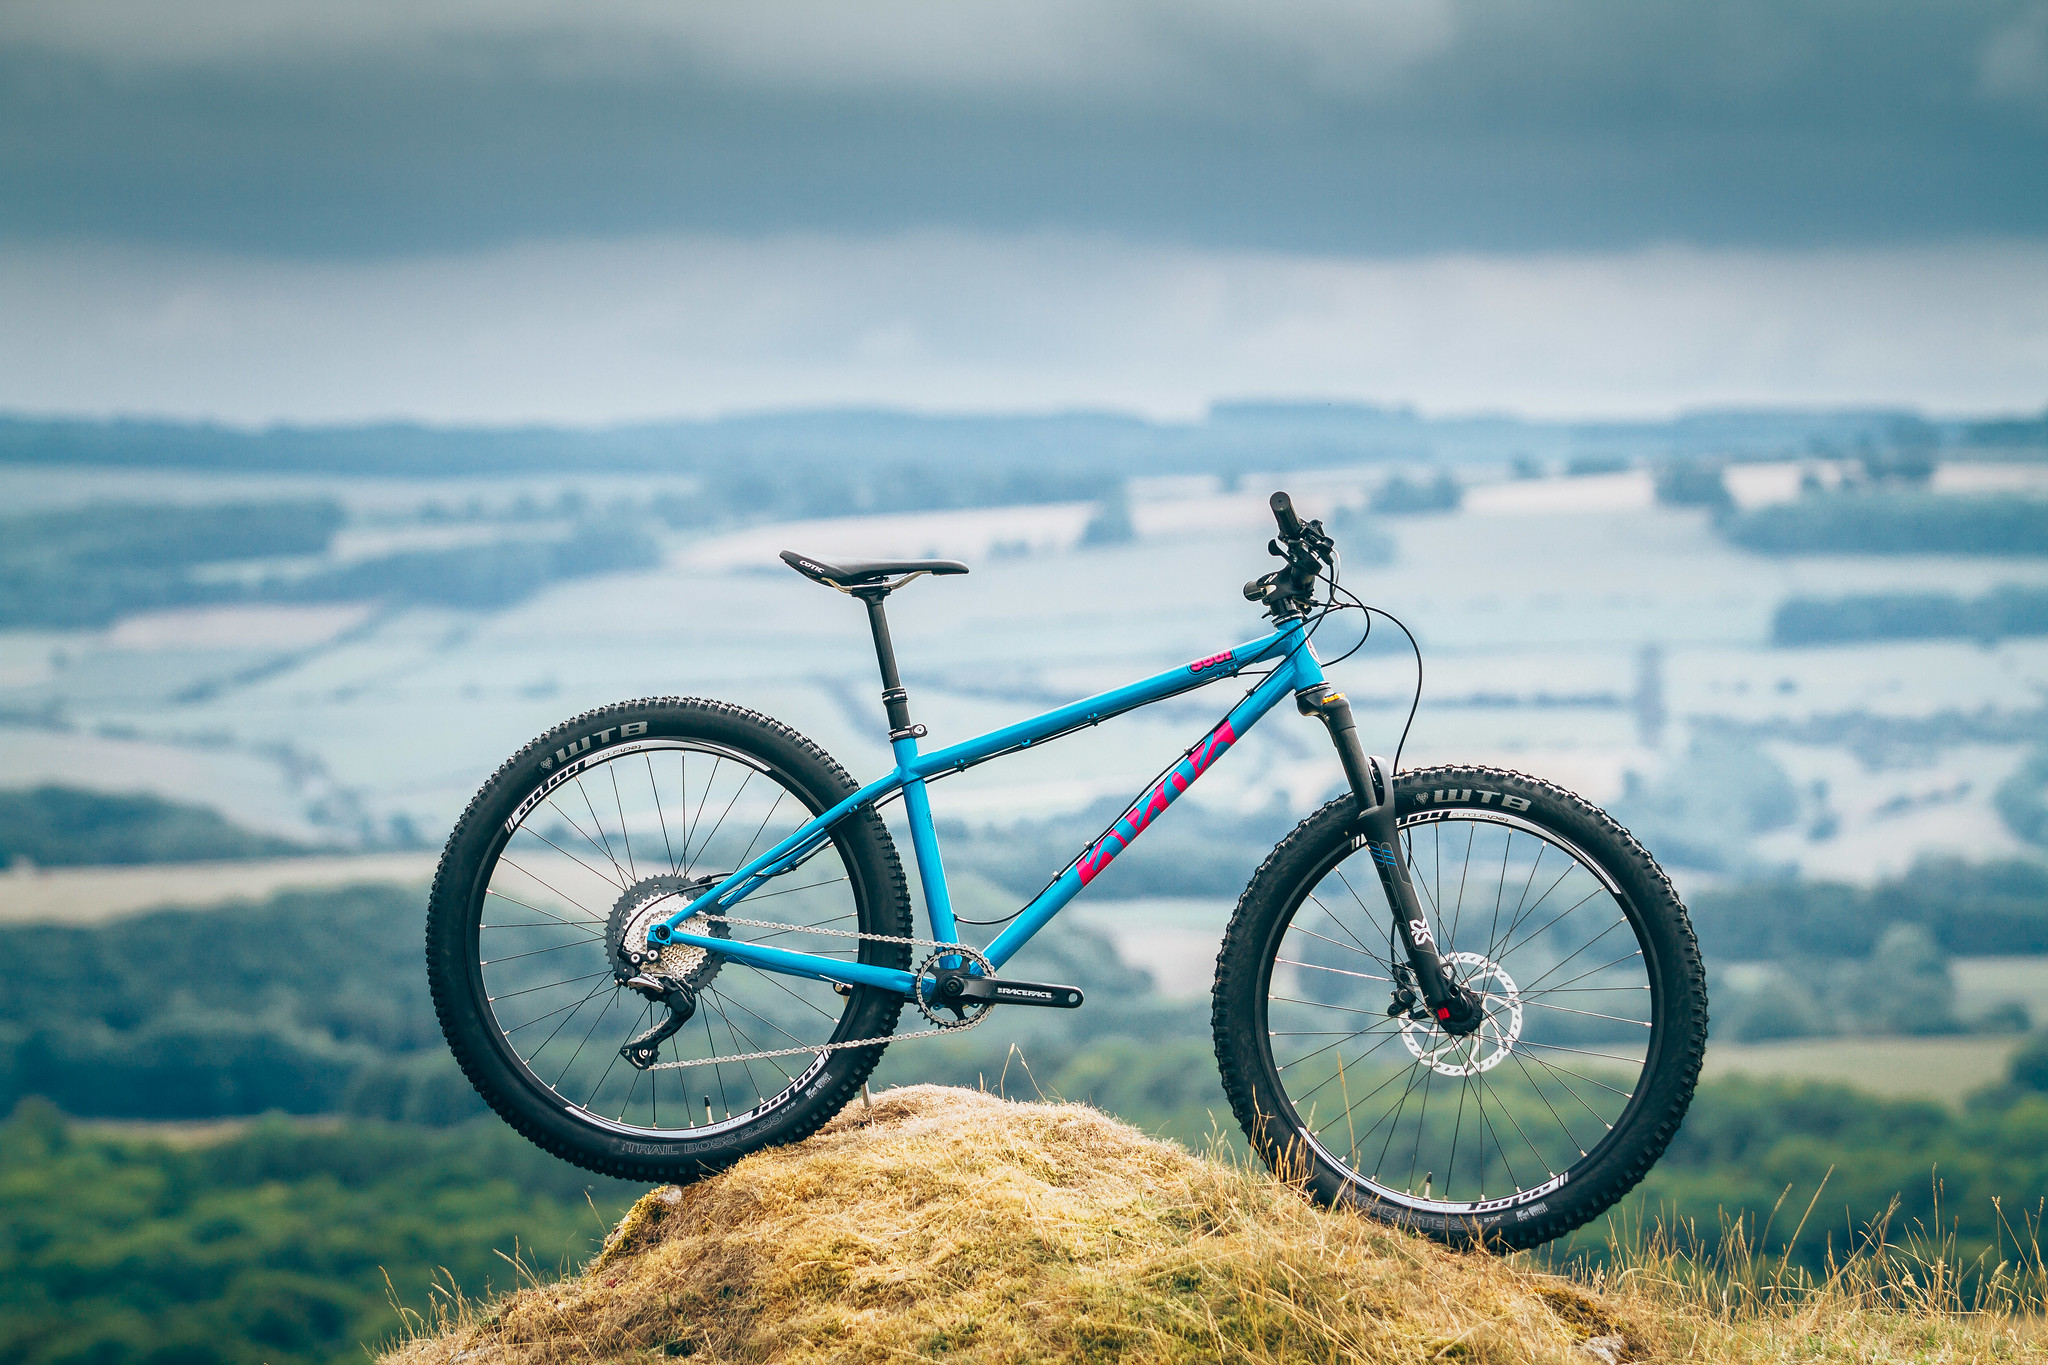 d466fc32597 The new blue/magenta Cotic Soul - Steel Mountain Bike